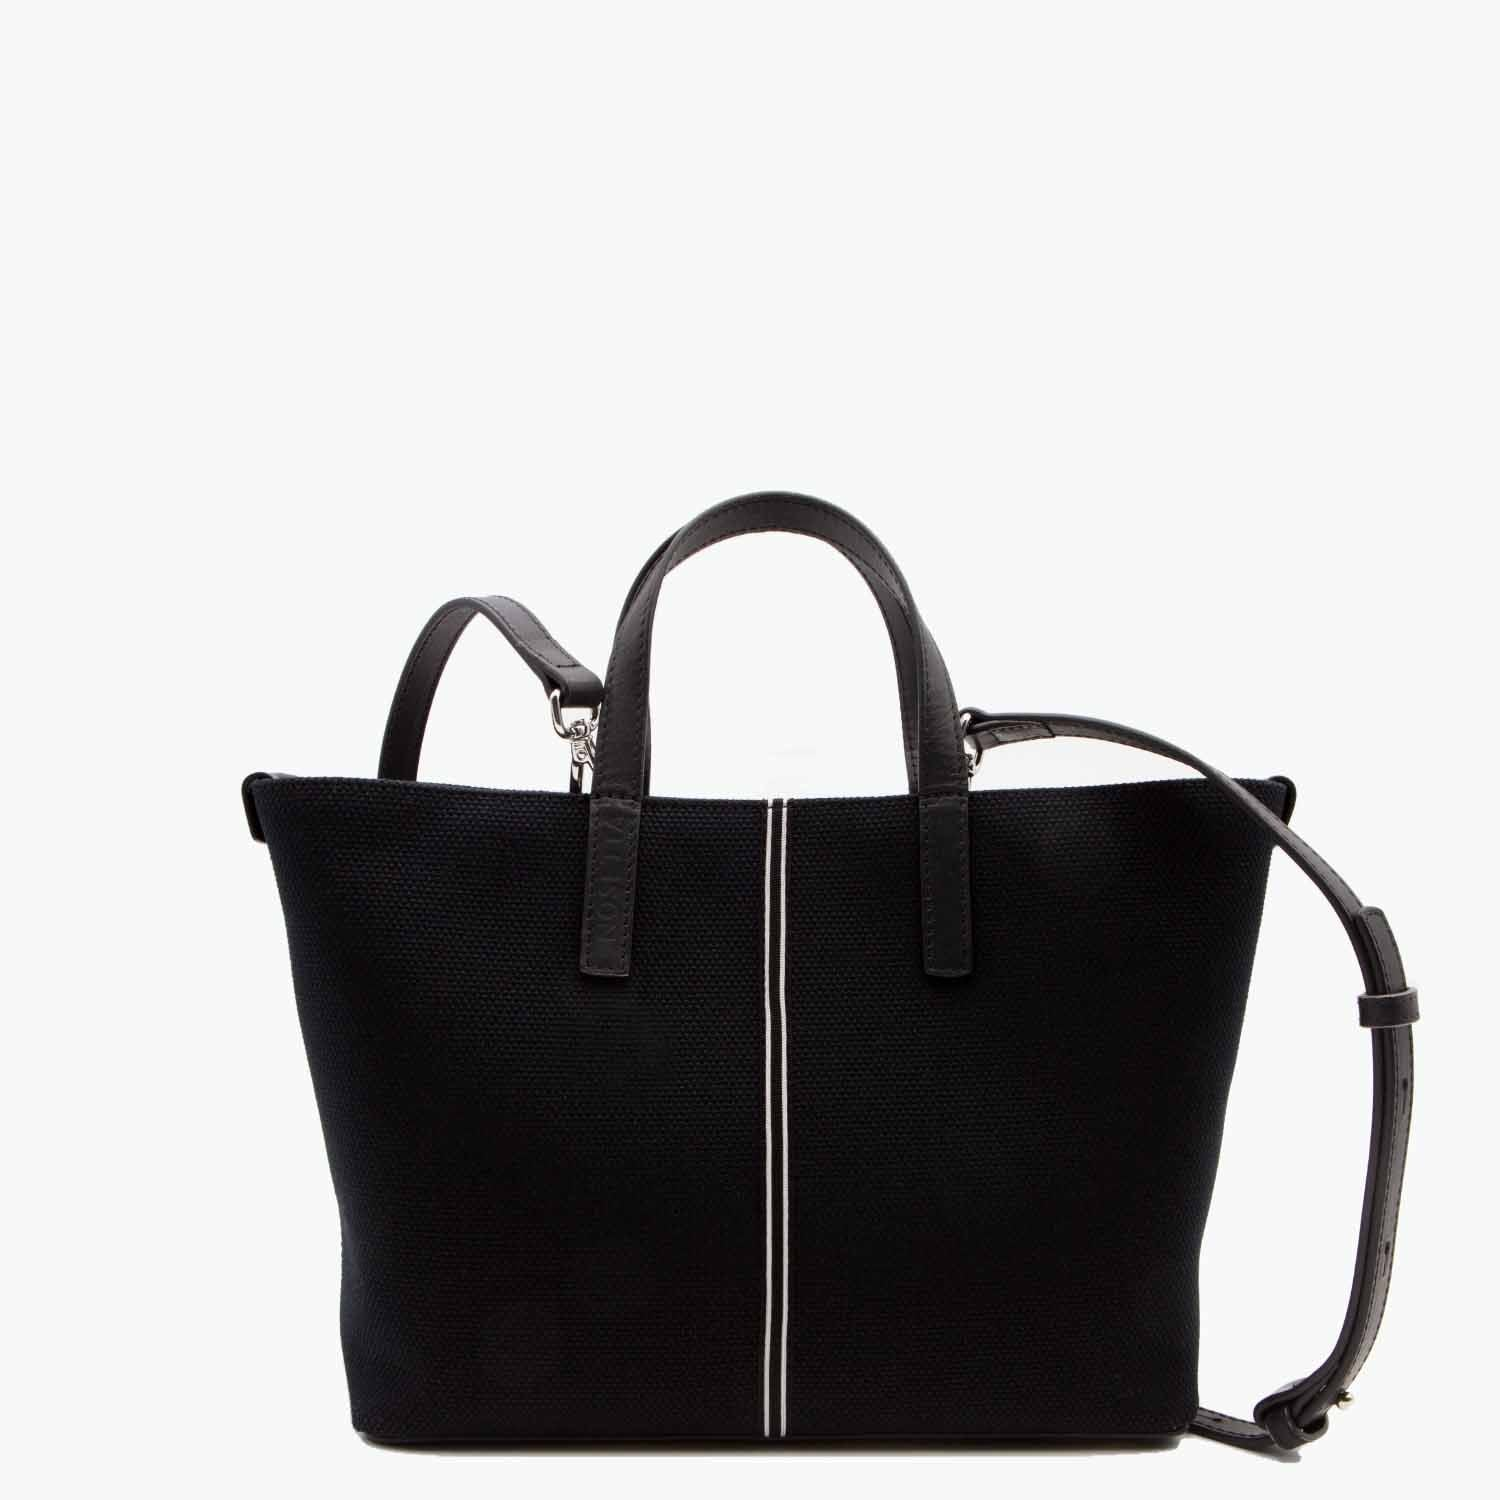 Carlia Small Tote Cotton Canvas and Leather